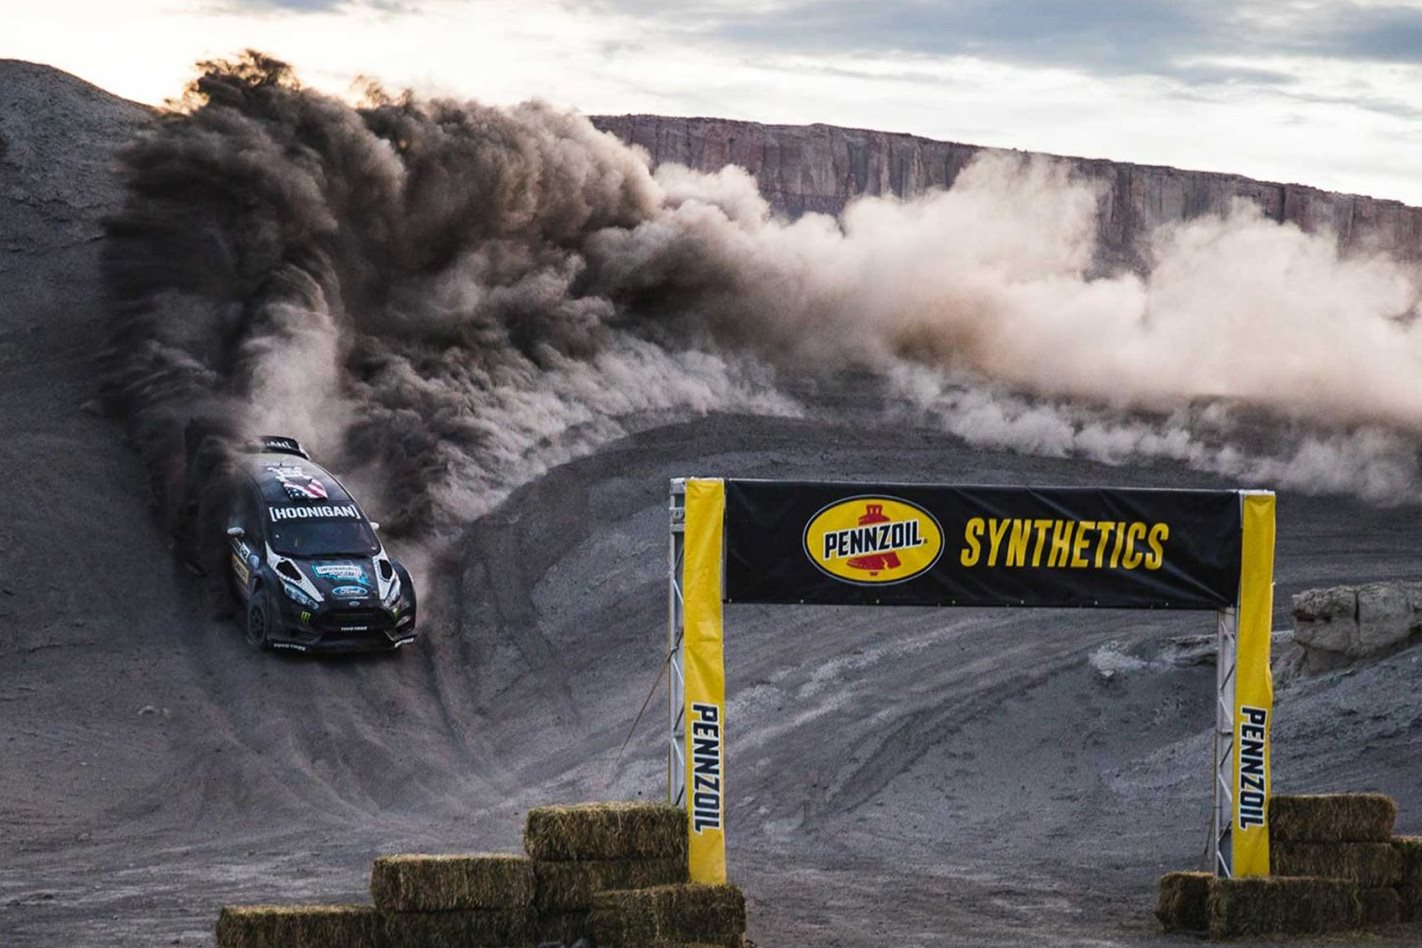 Terrakhana - Ken Block's Ford Fiesta ST RX43 on dirt